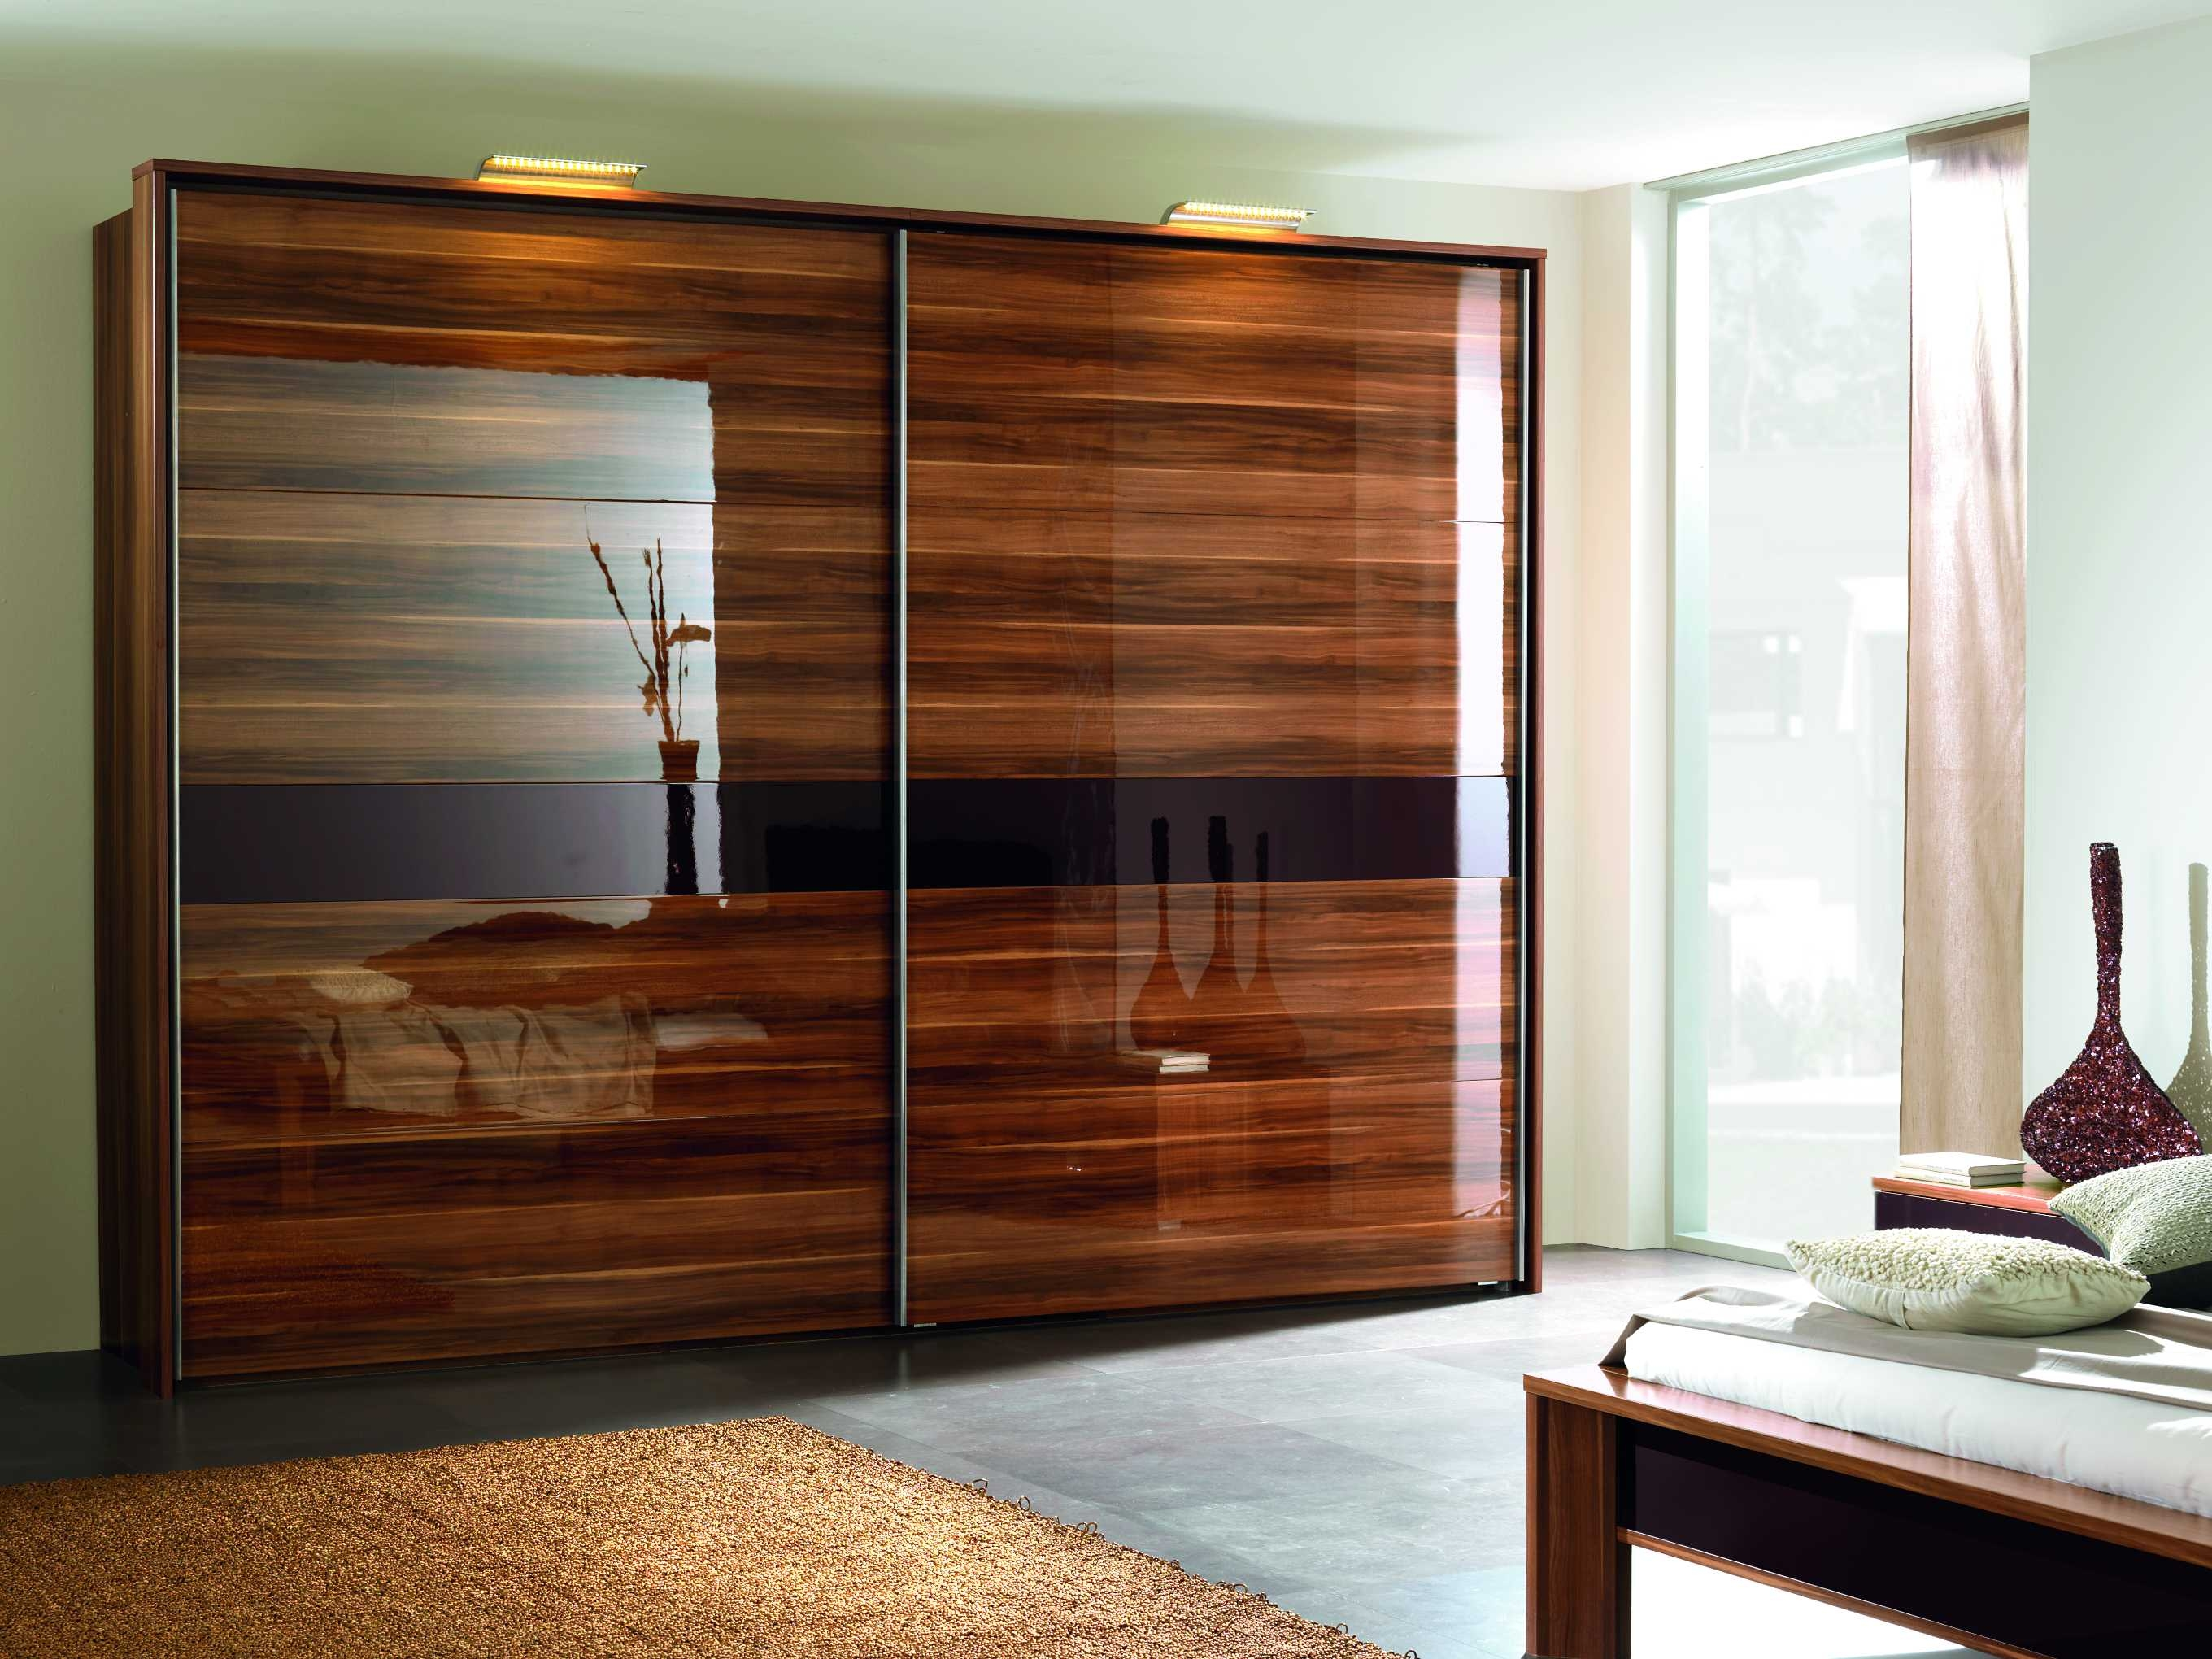 Wonderful Bedroom Furniture Wardrobes Sliding Doors F 3575790211 Inside Cupboard Sliding Doors (Image 24 of 25)